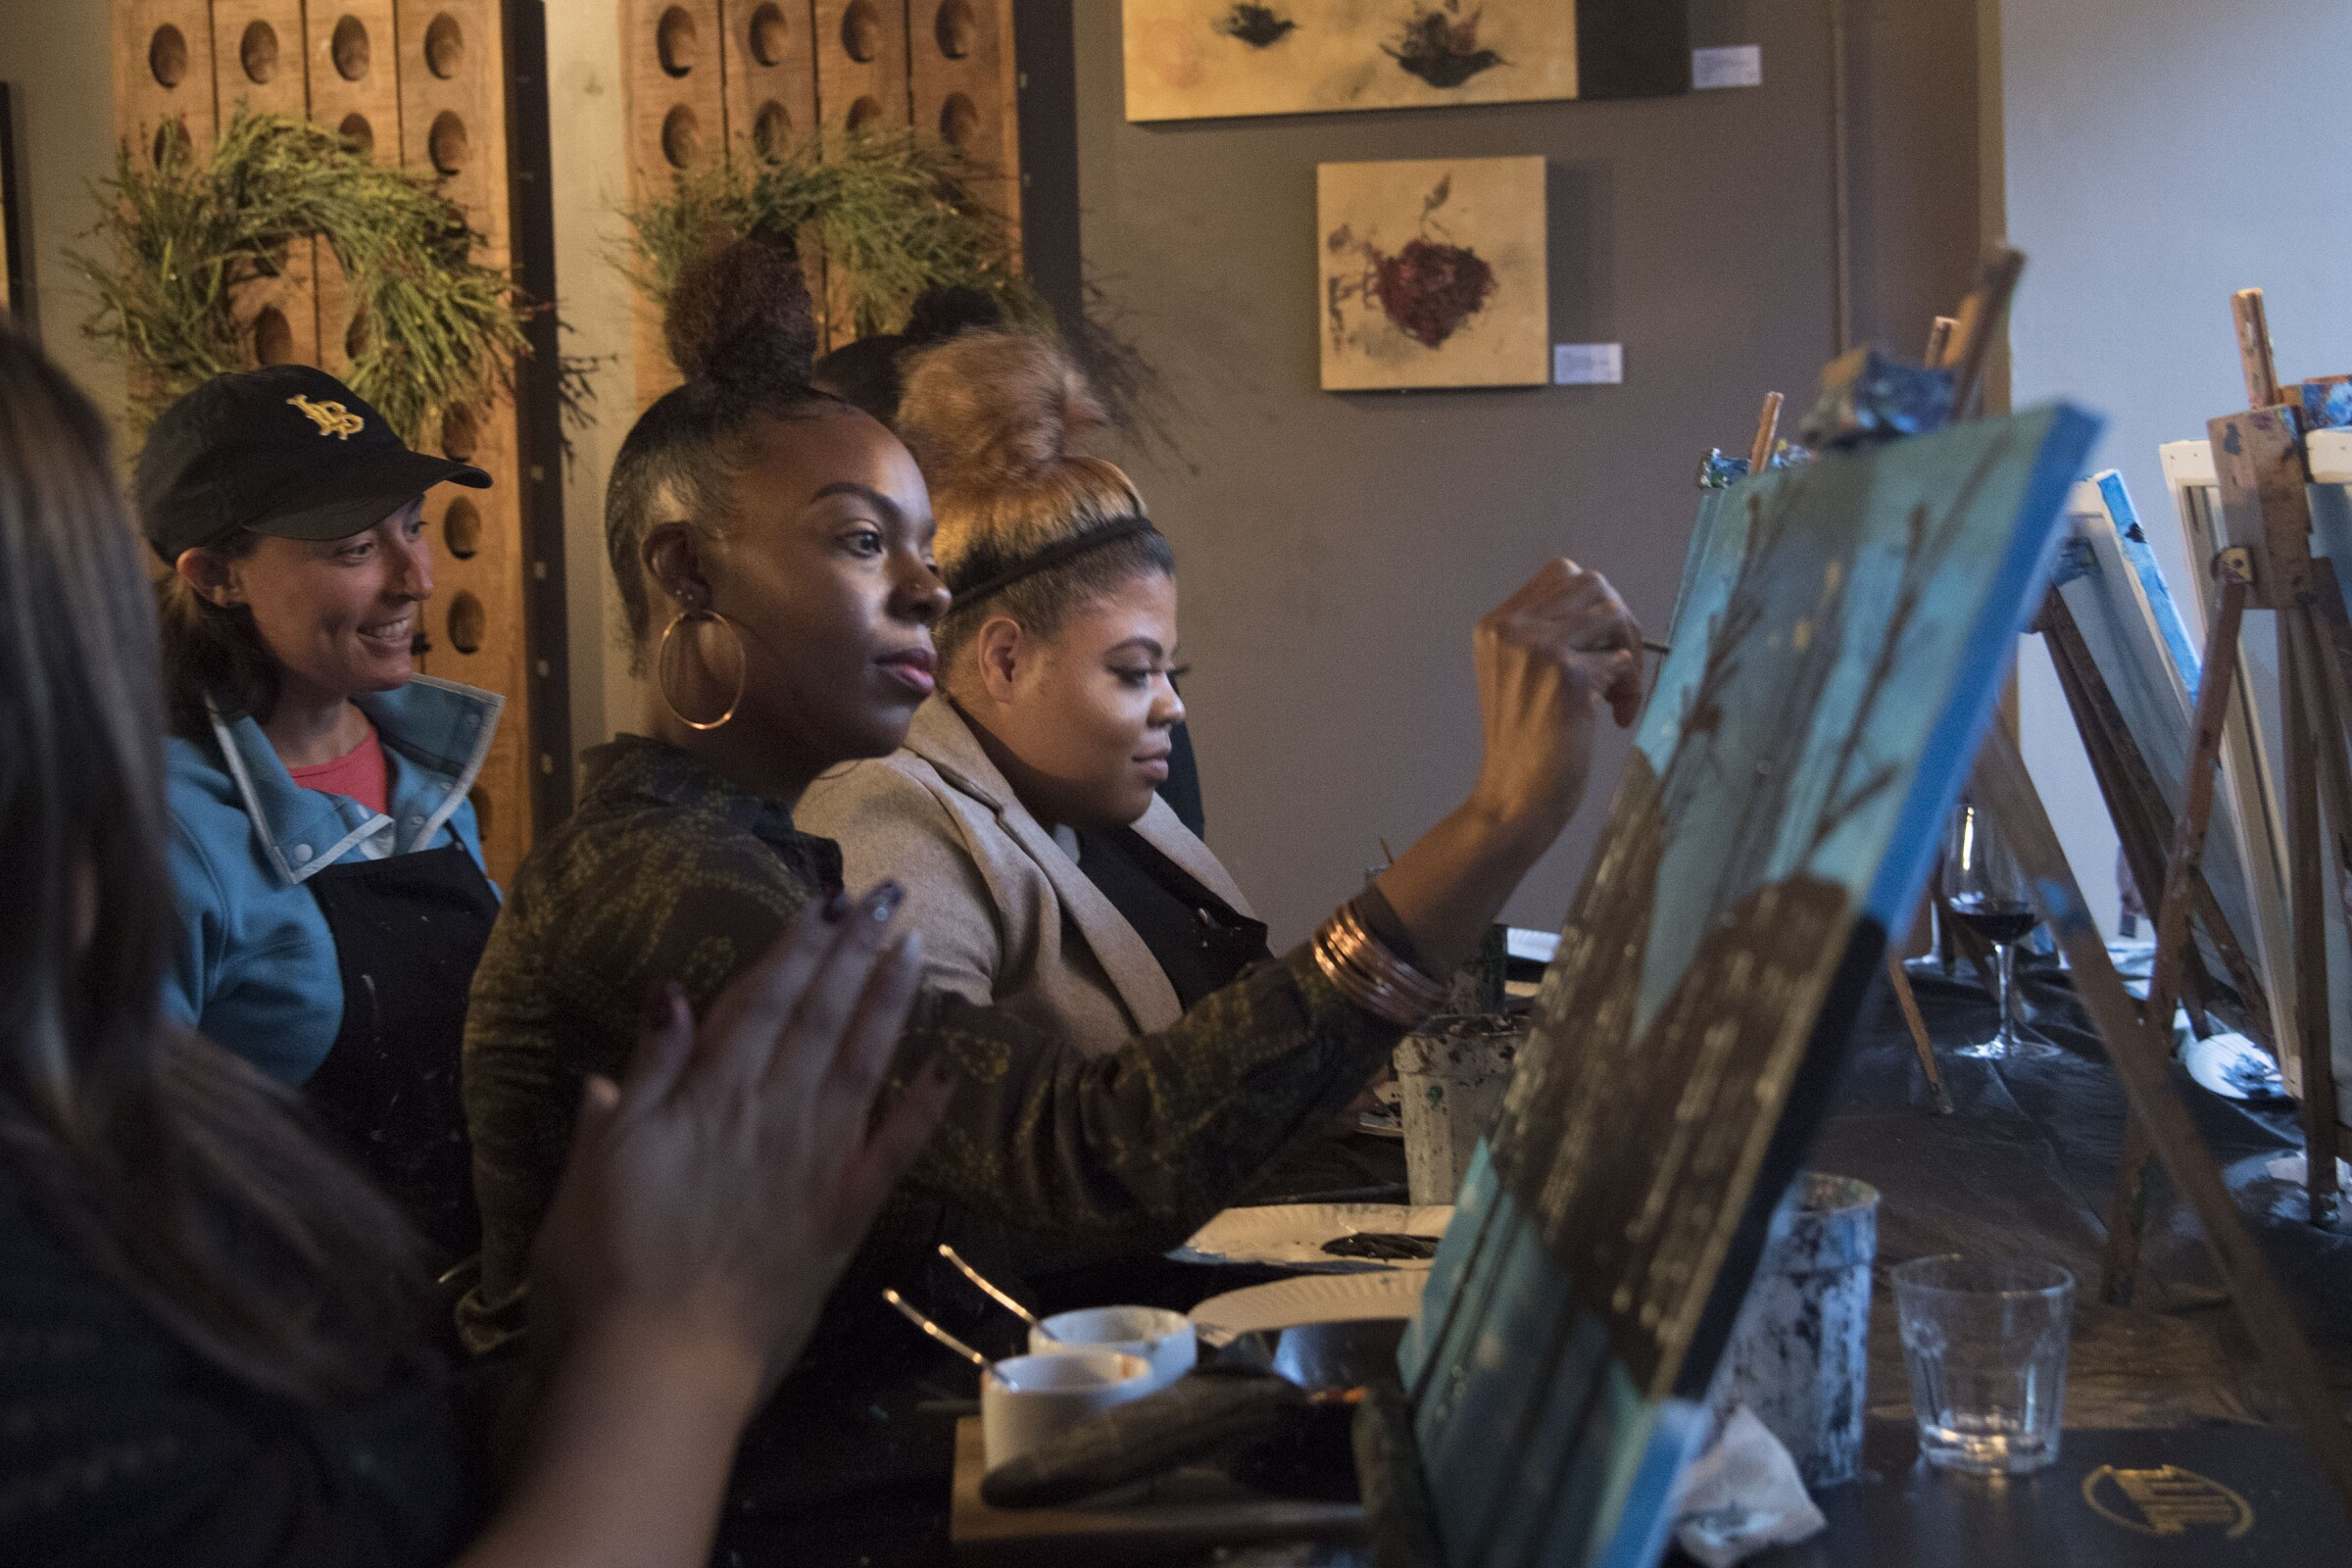 Candice Branch of Corona, center, and Janelle Tarver, right, of Rancho Cucamonga, learn to paint at District Wine with Brushstrokes and Beverages, which partners with area businesses to hold painting classes in Long Beach's East Village.